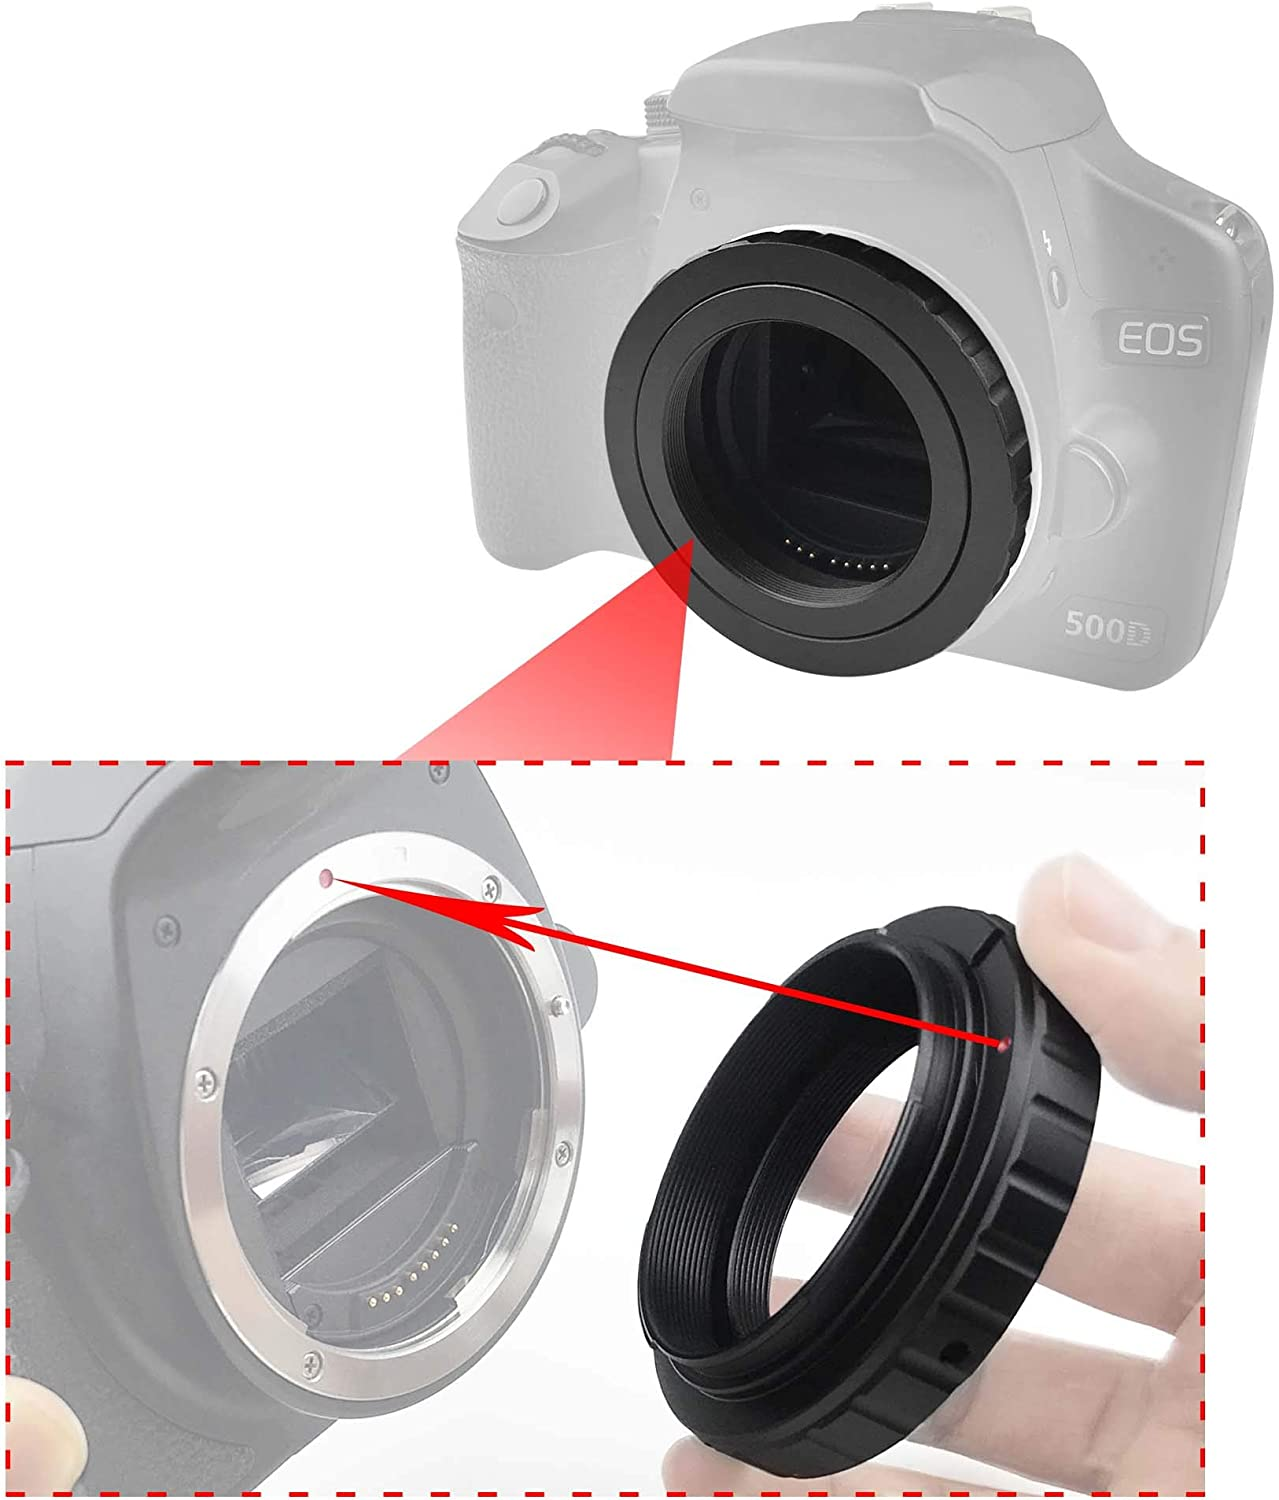 Bewinner Camera Converter,T2//T Mount Aluminum Lens Adapter Ring for Canon EOS EF DSLR 650D 60D 550D,Detachable Adapter Ring,Can Use Alone,Convenient and Practical